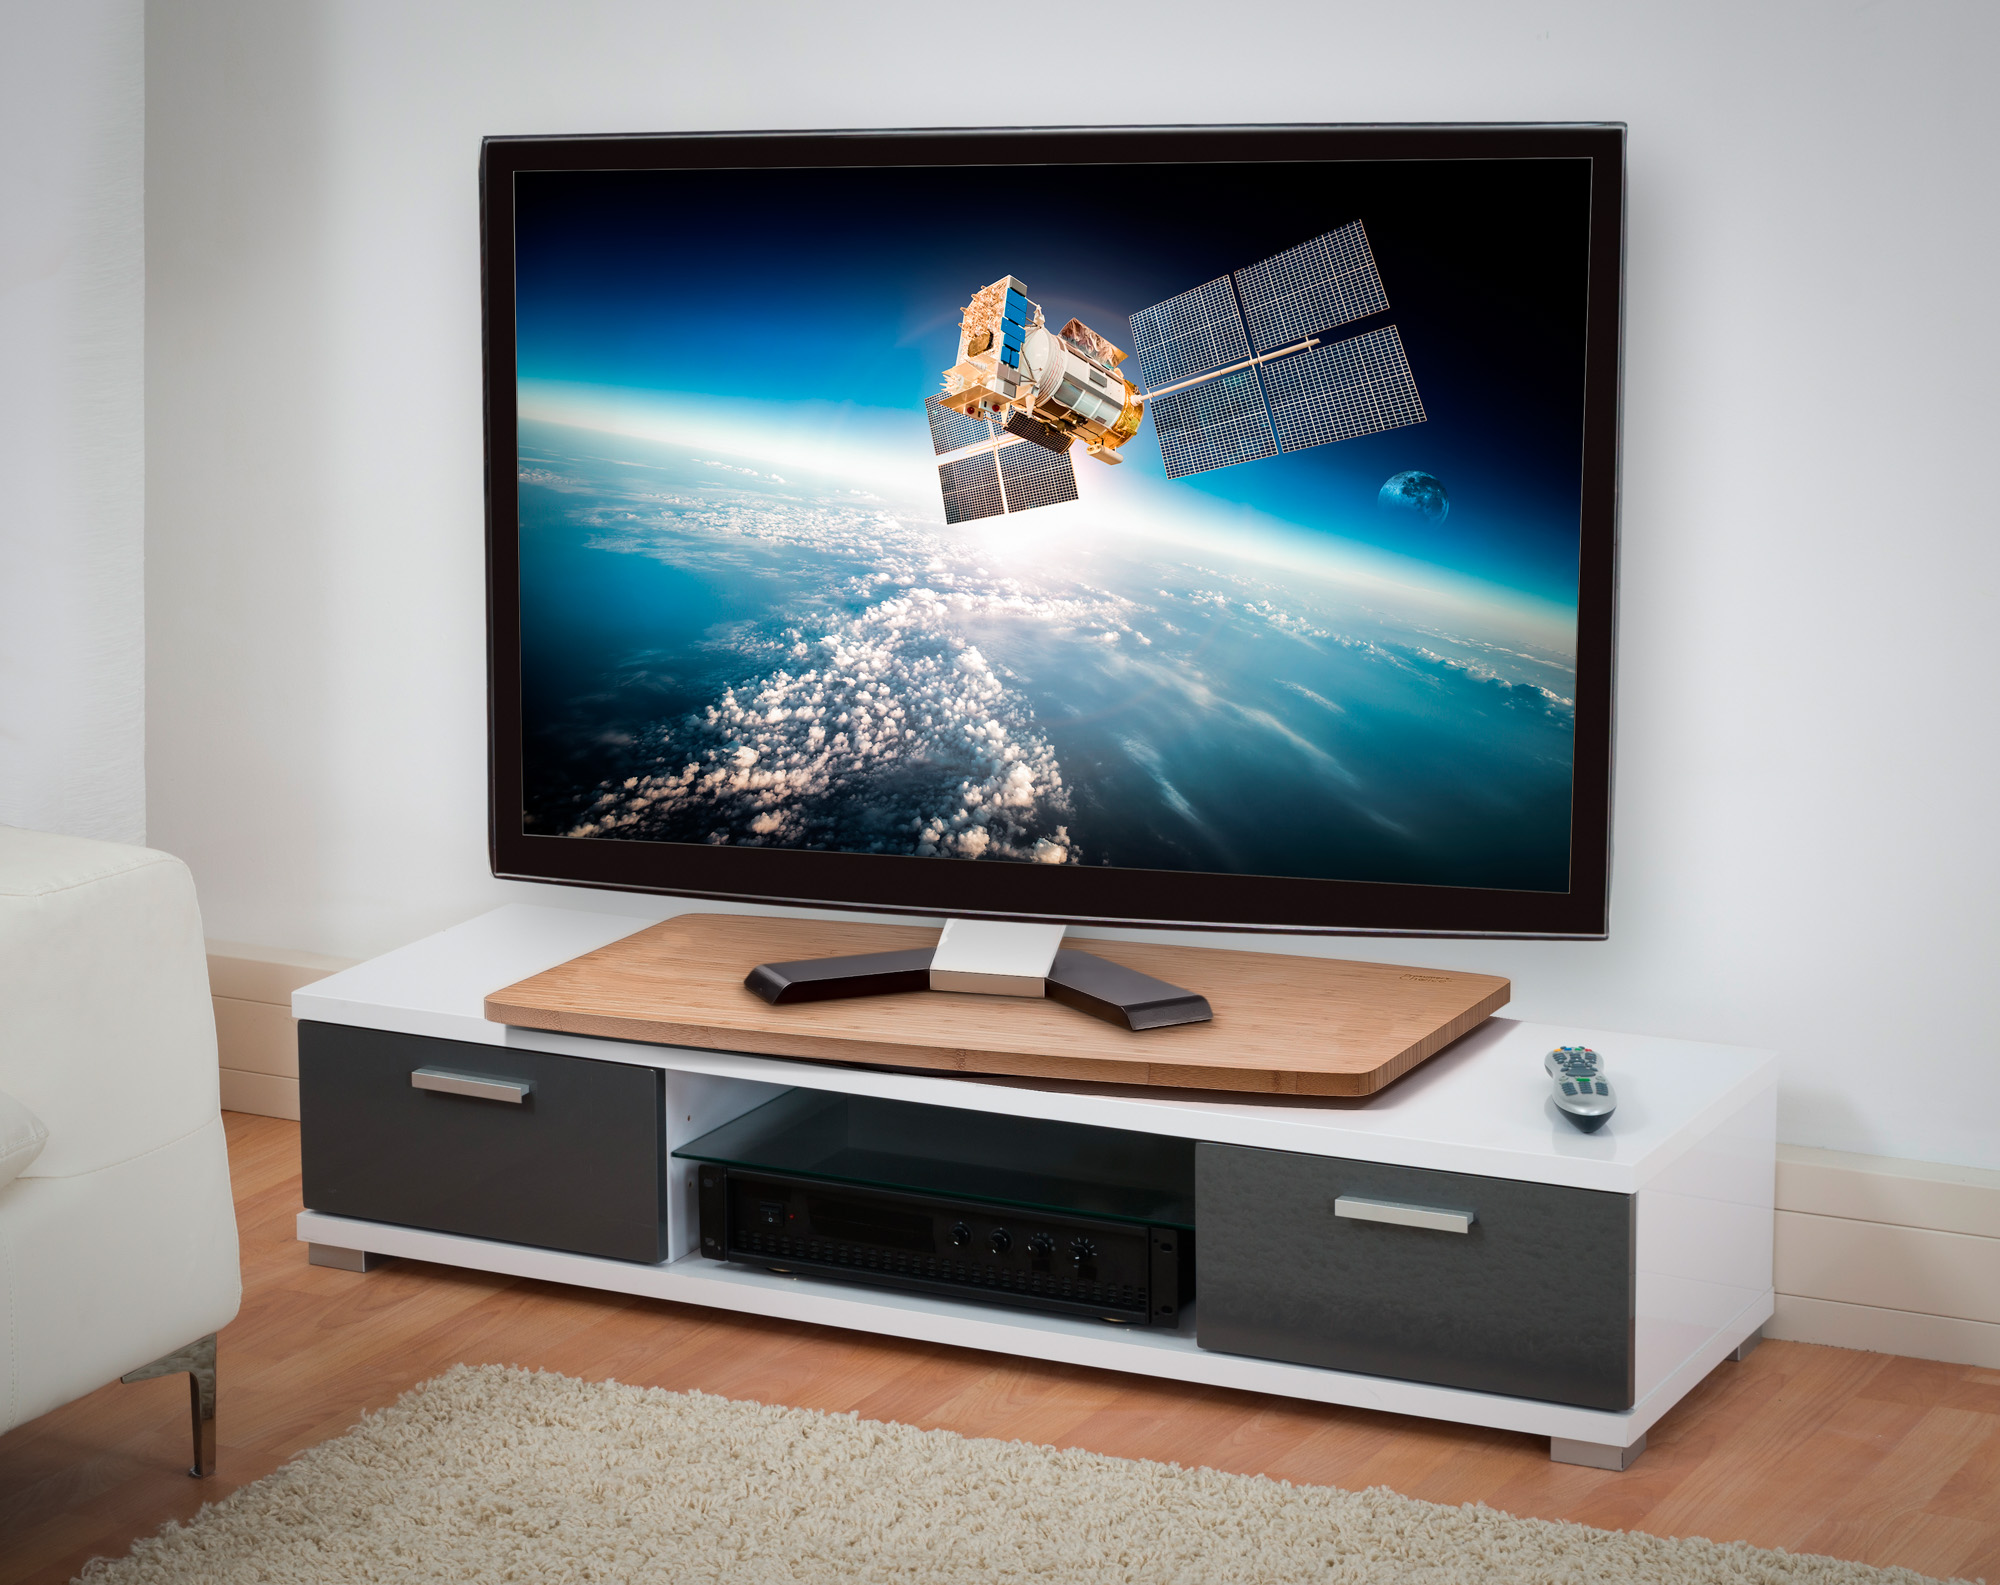 31 inch Base Surface Prosumer/'s Choice Black TV Swivel Stand for LED//LCD TV